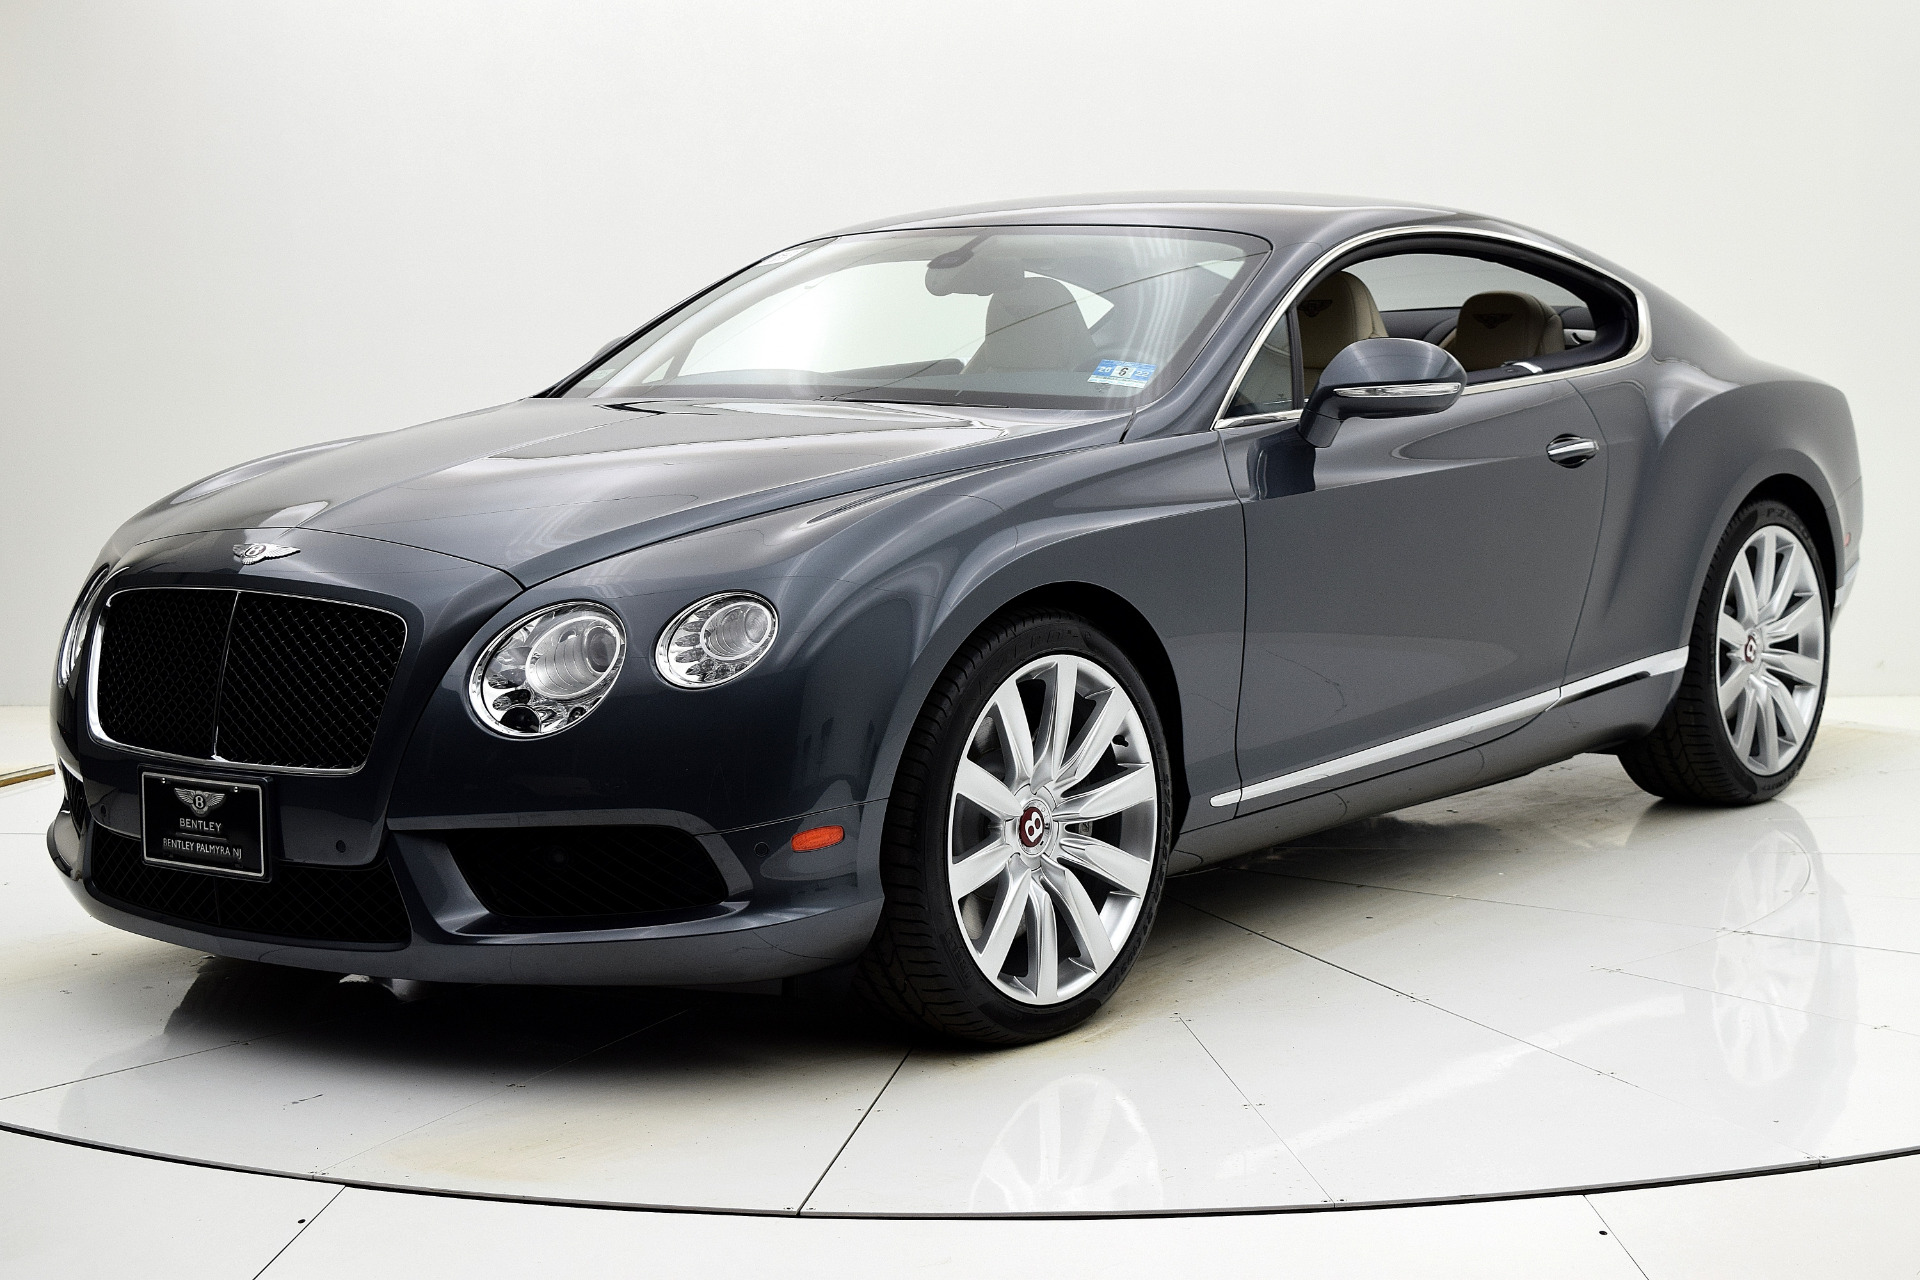 Used 2013 Bentley Continental GT V8 Coupe for sale Sold at Bentley Palmyra N.J. in Palmyra NJ 08065 2